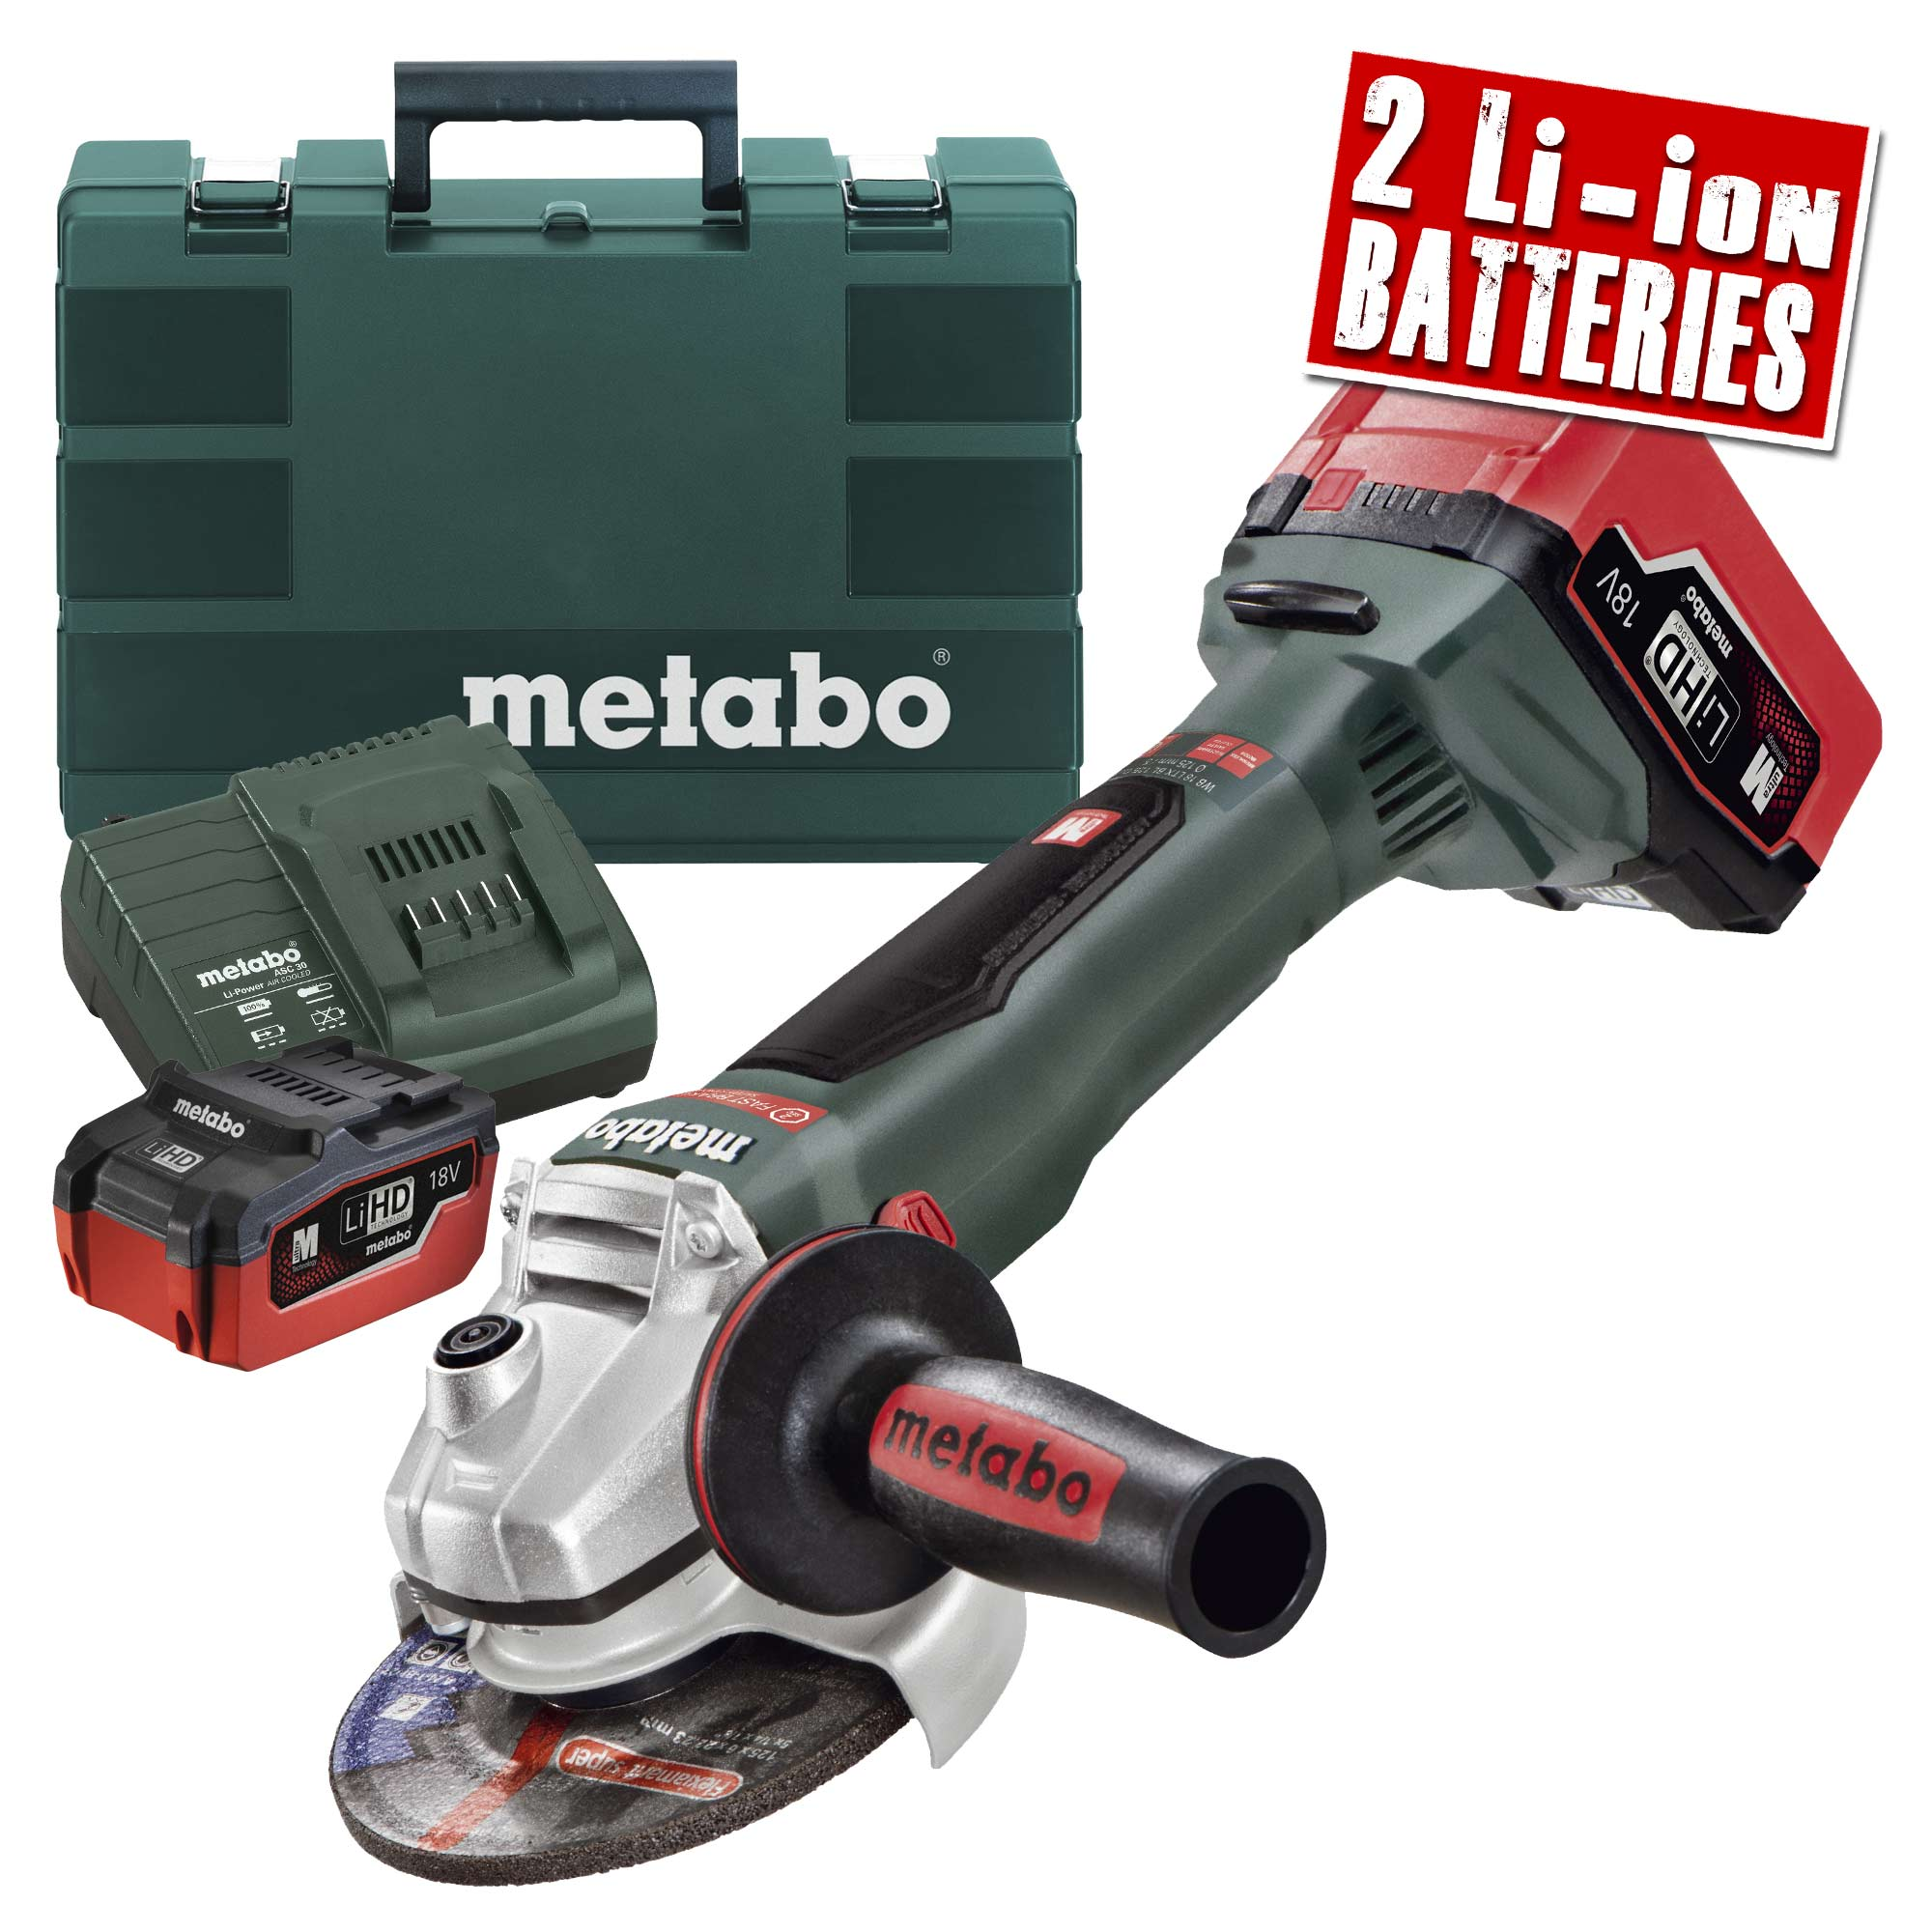 metabo wb 18 ltx bl metabo 18v lihd 125mm brushless grinder. Black Bedroom Furniture Sets. Home Design Ideas